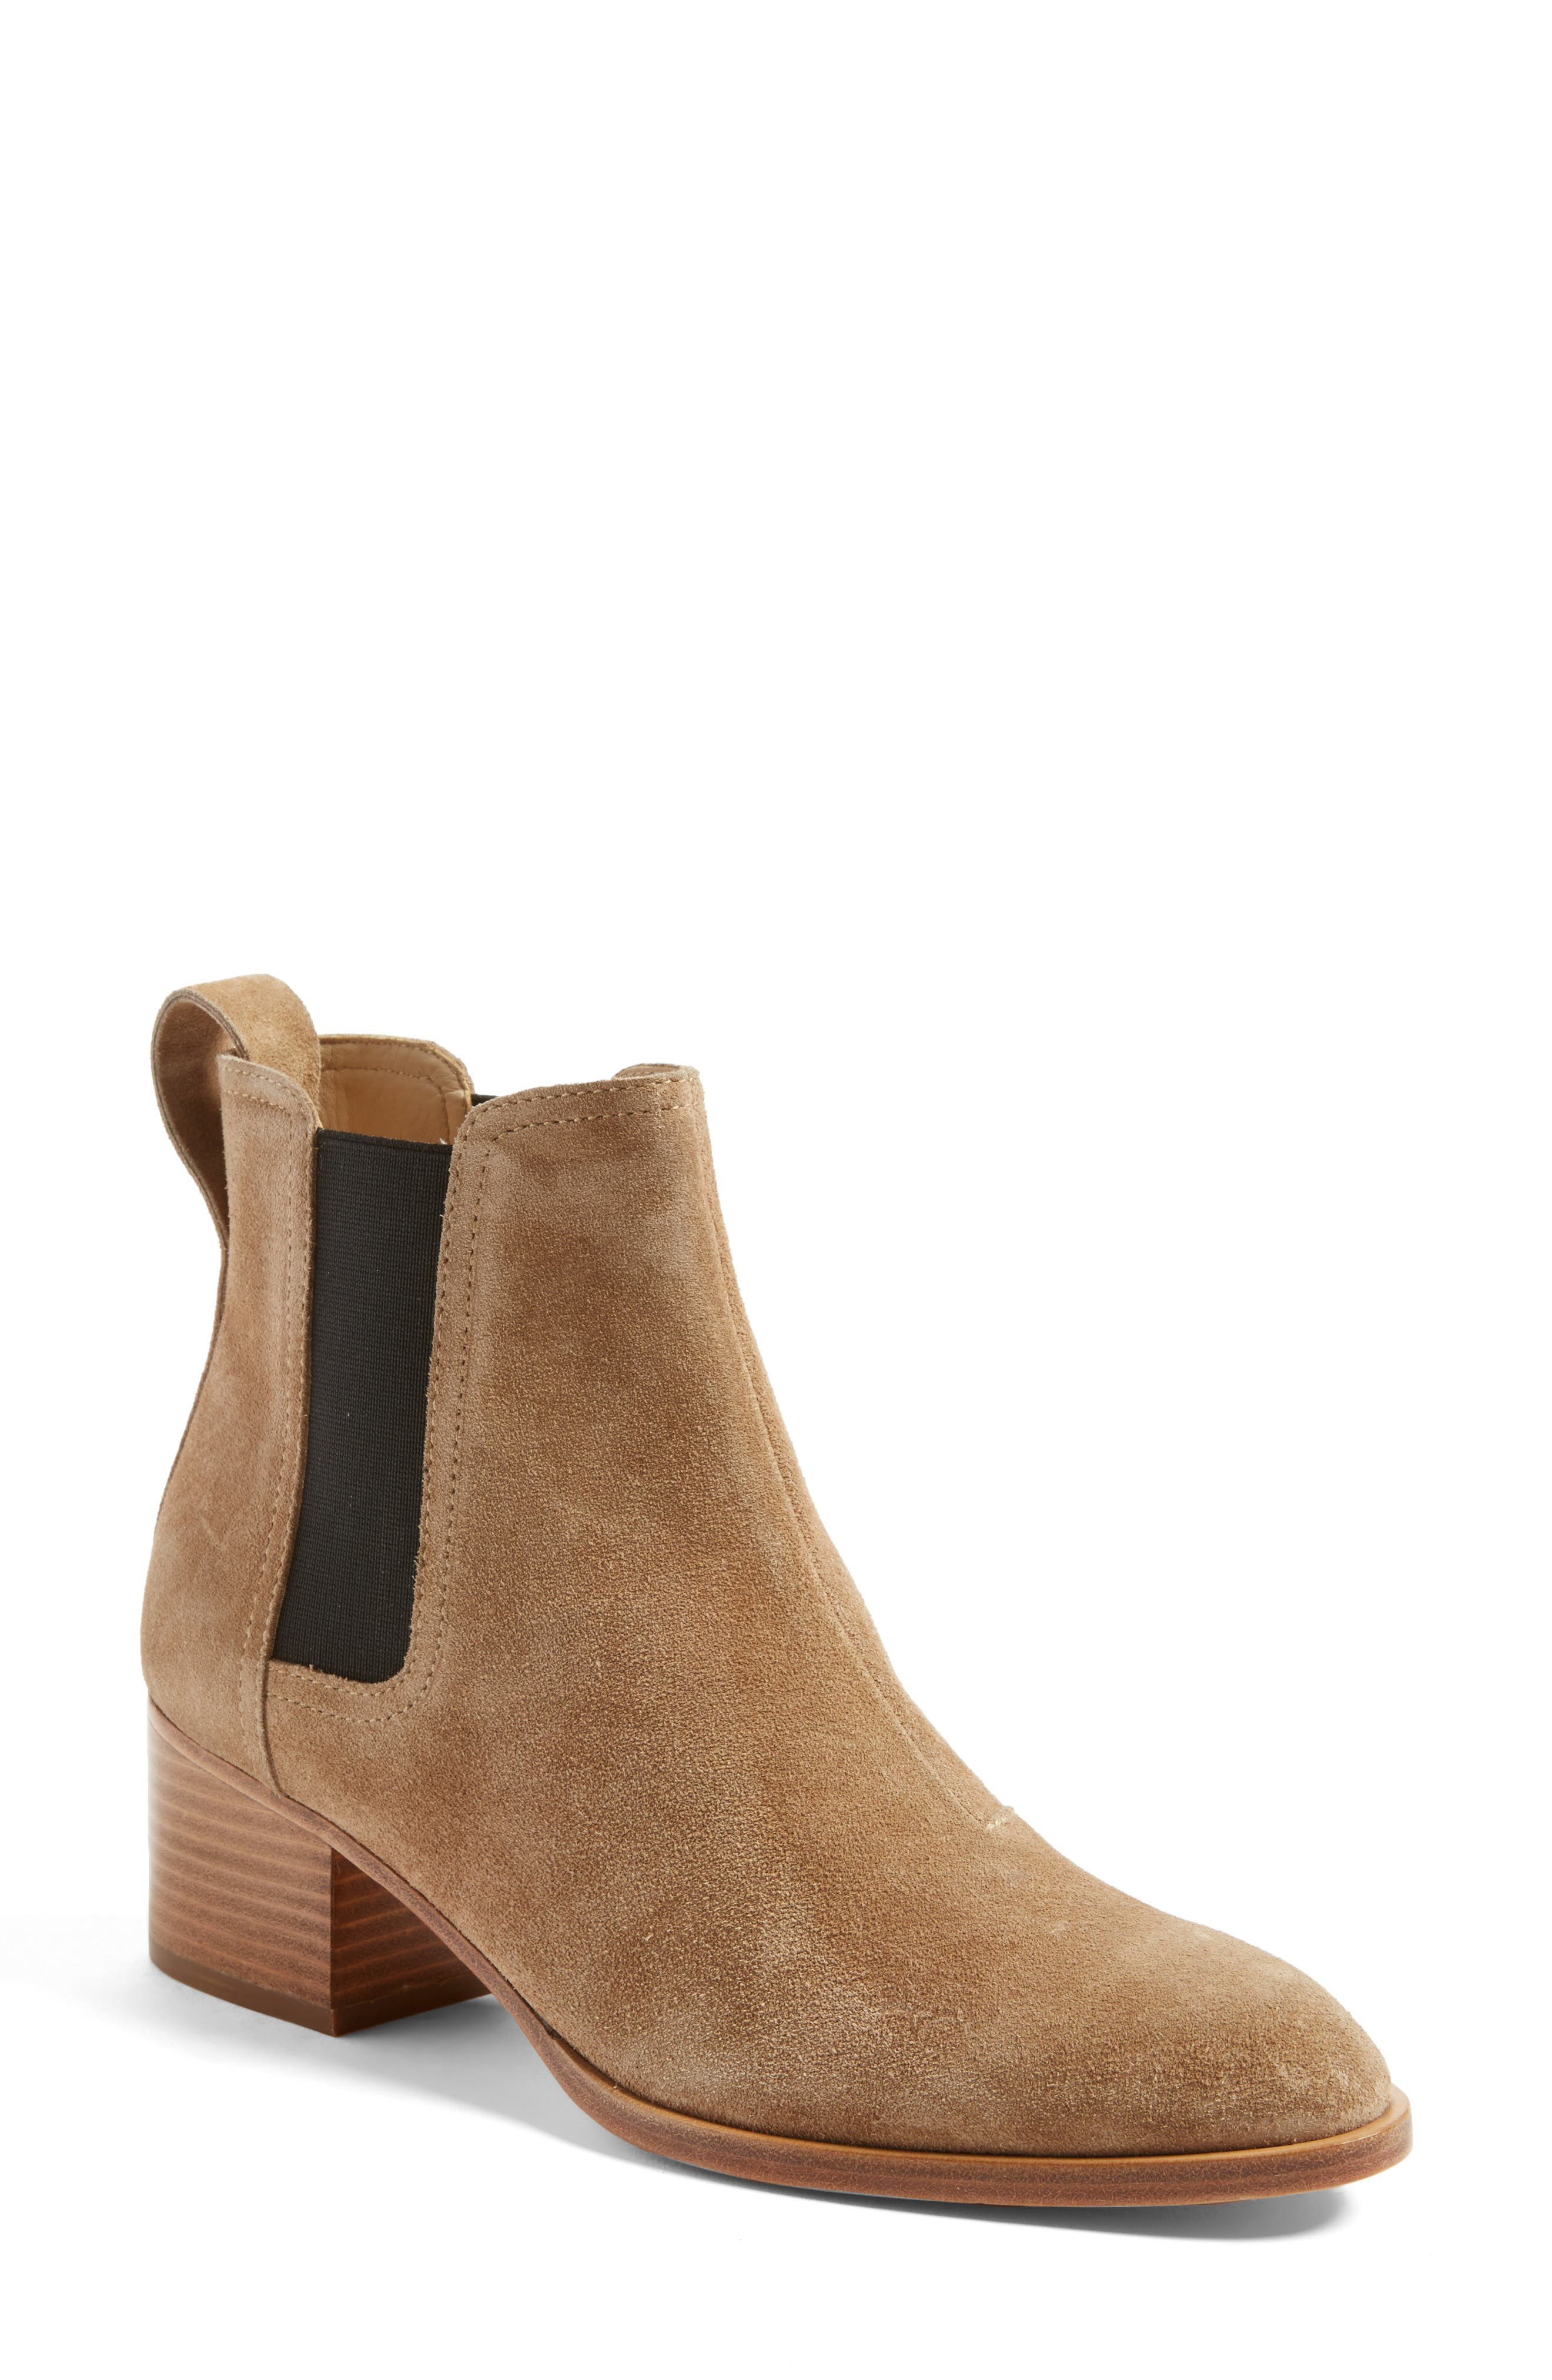 'Walker' Bootie,                             Alternate thumbnail 2, color,                             CAMEL SUEDE